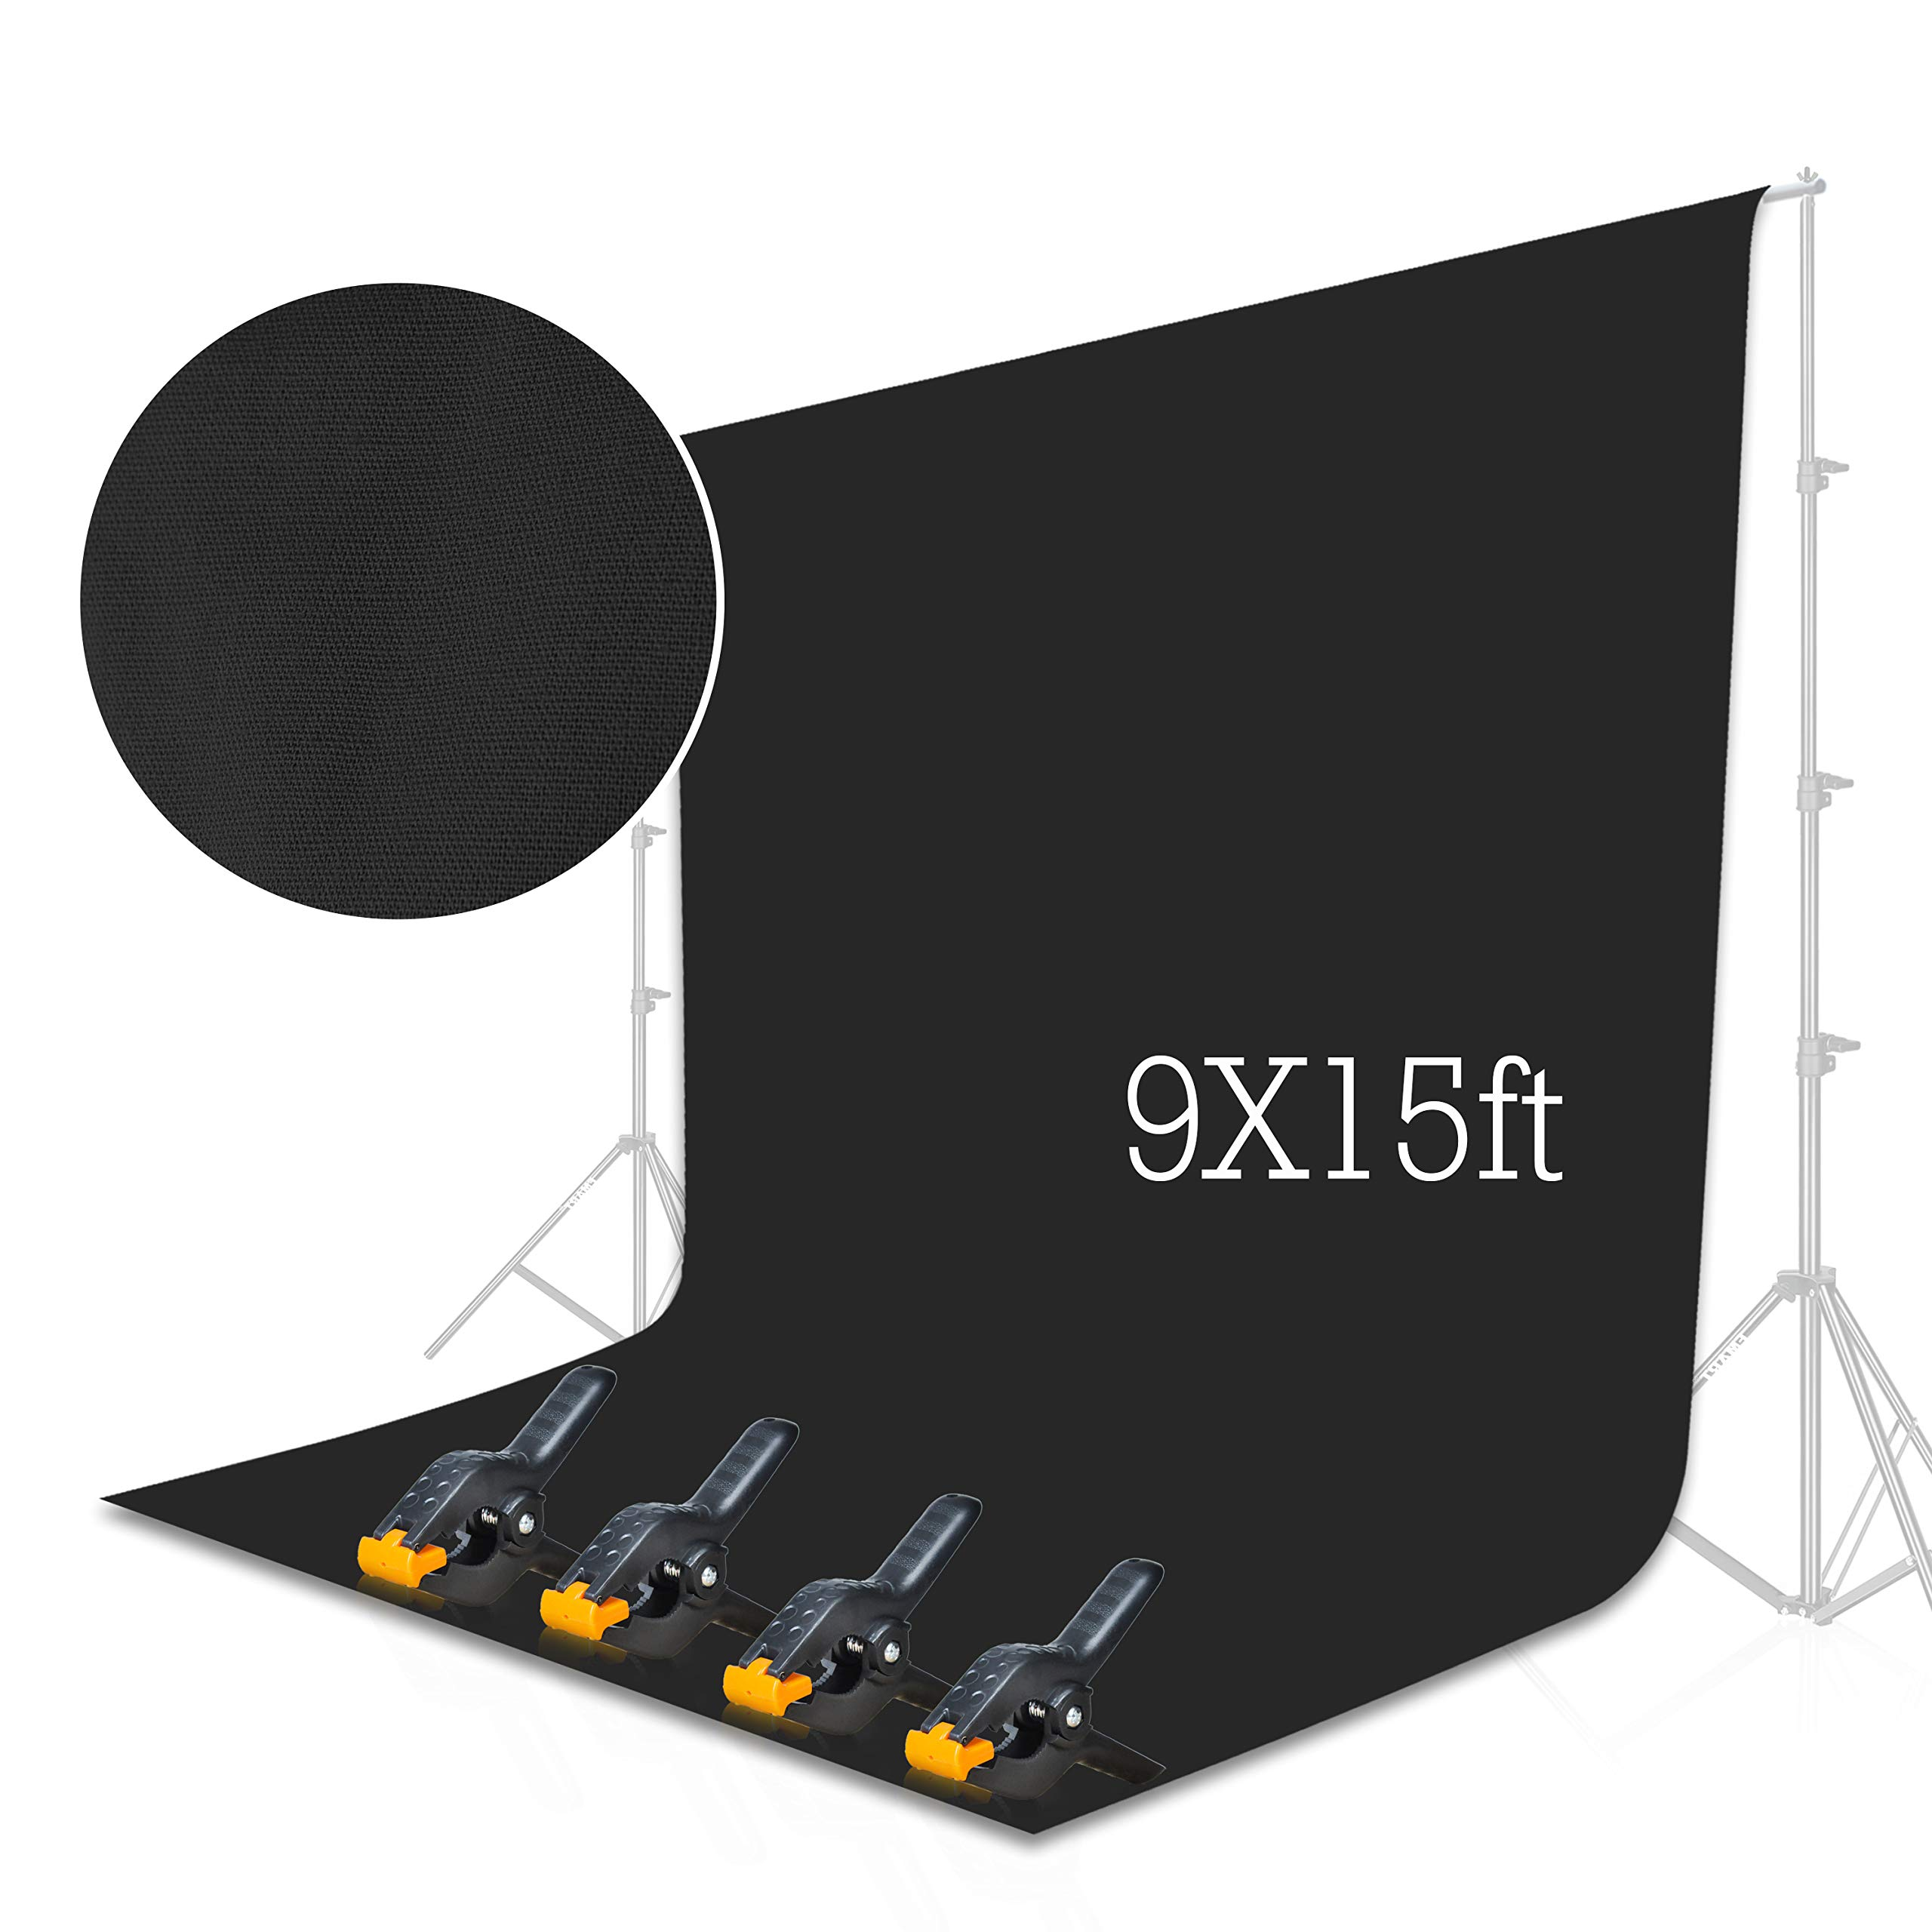 Emart Black Backdrop Background Screen 9 x 15 ft Muslin Photo Video Backdrop Studio, 4 x Backdrop Clamp Included by EMART